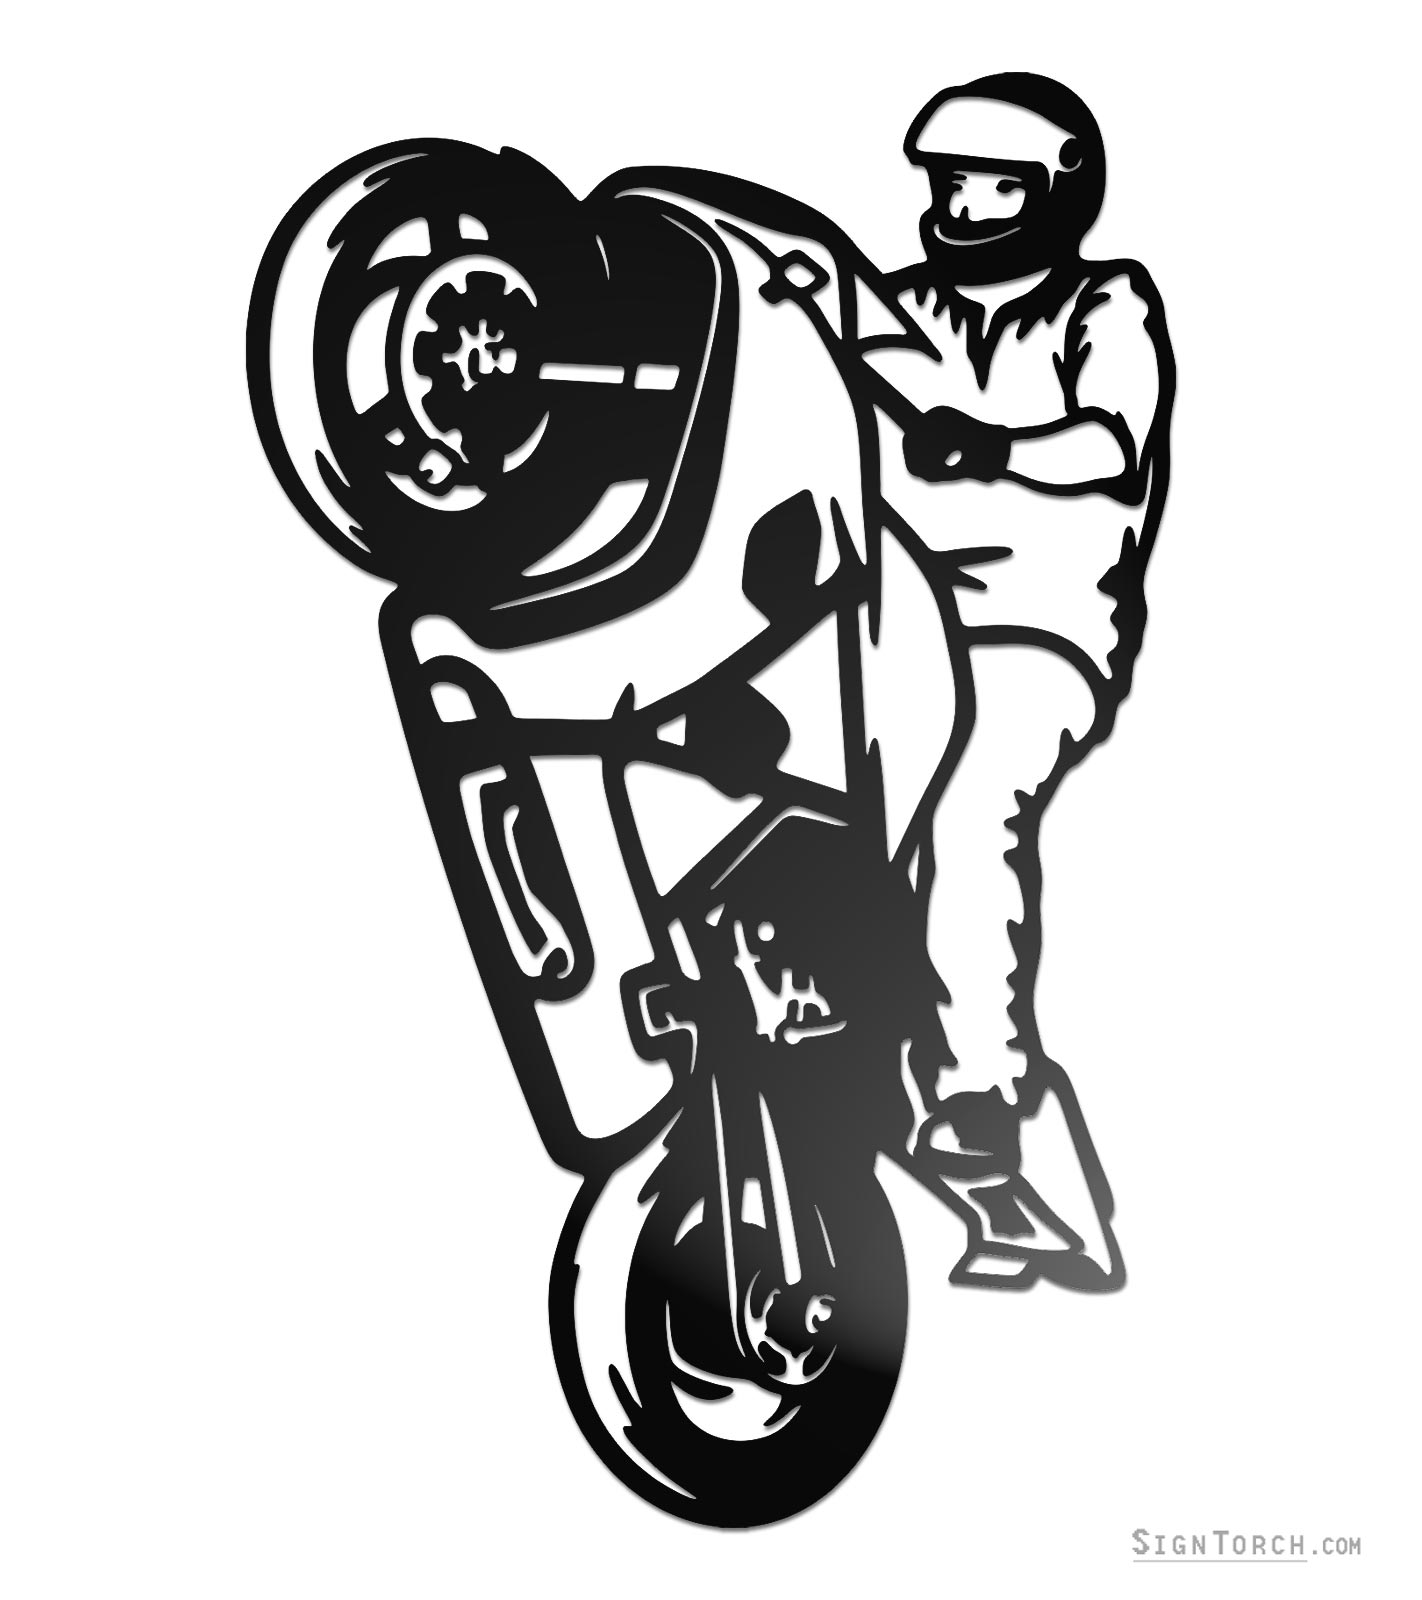 motorcycle_trick=.